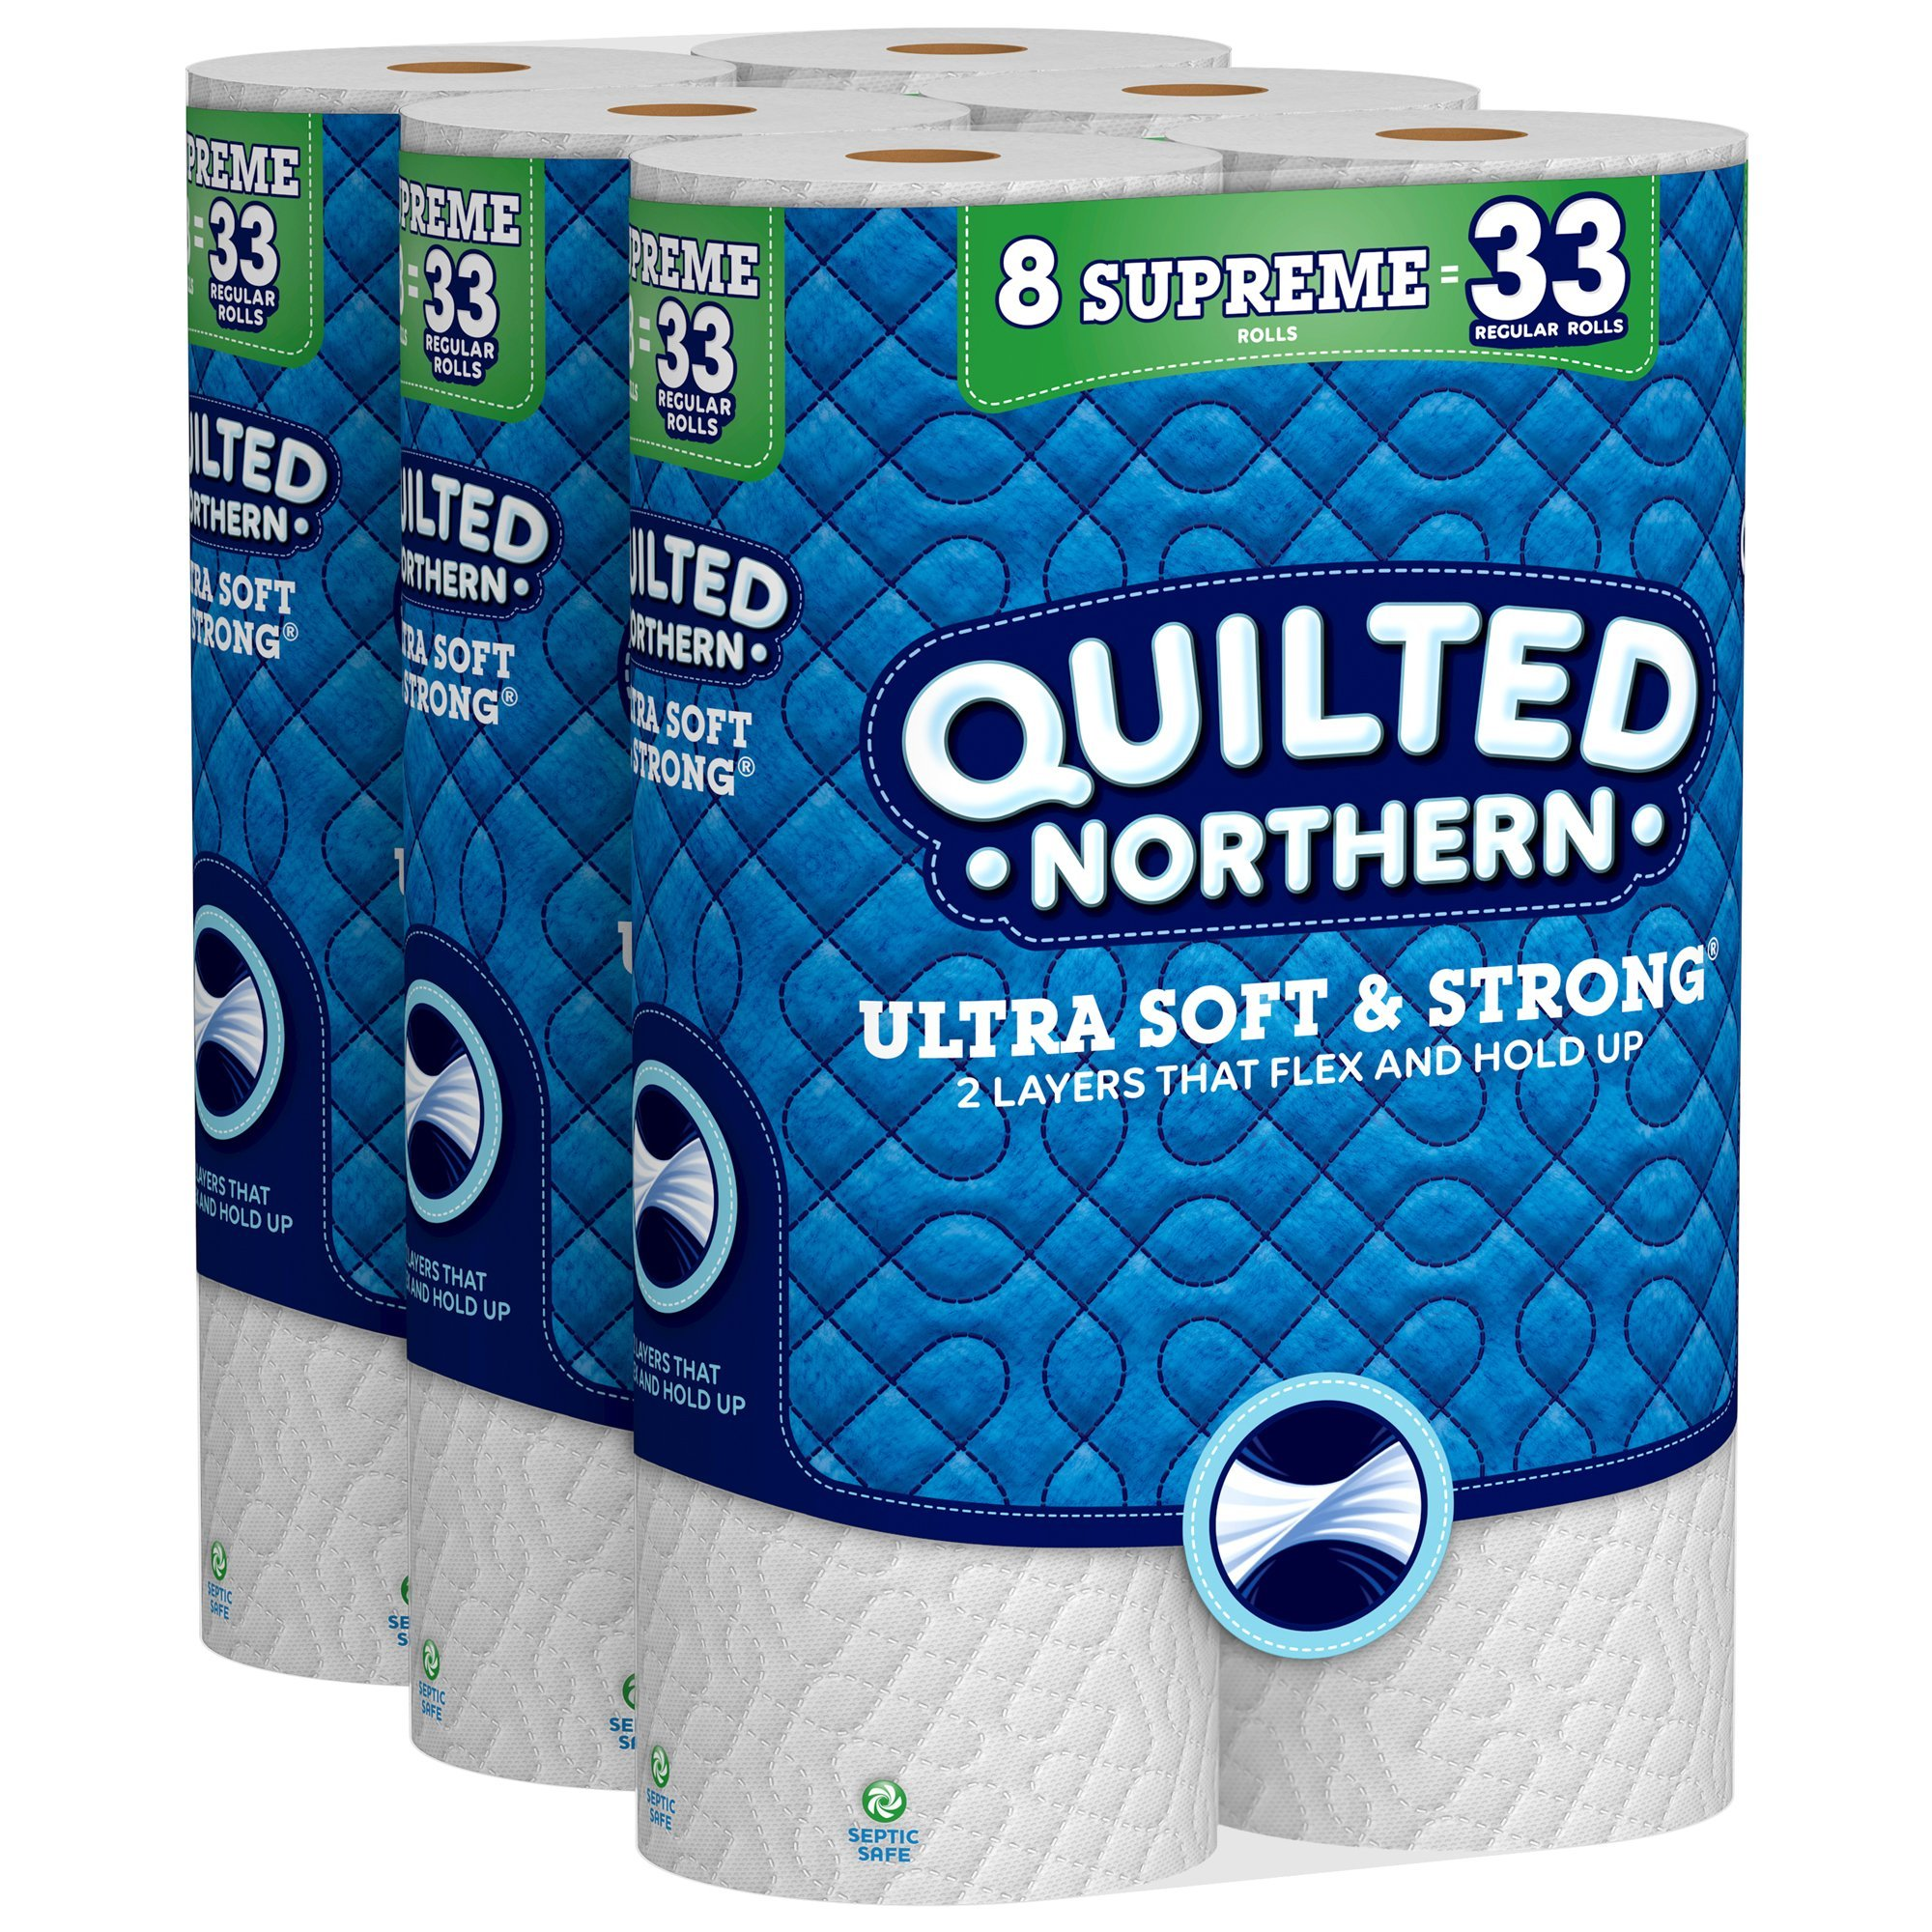 Quilted Northern Ultra Soft & Strong Toilet Paper, 24 Supreme Rolls, 340 2-Ply Sheets Per Roll by Quilted Northern